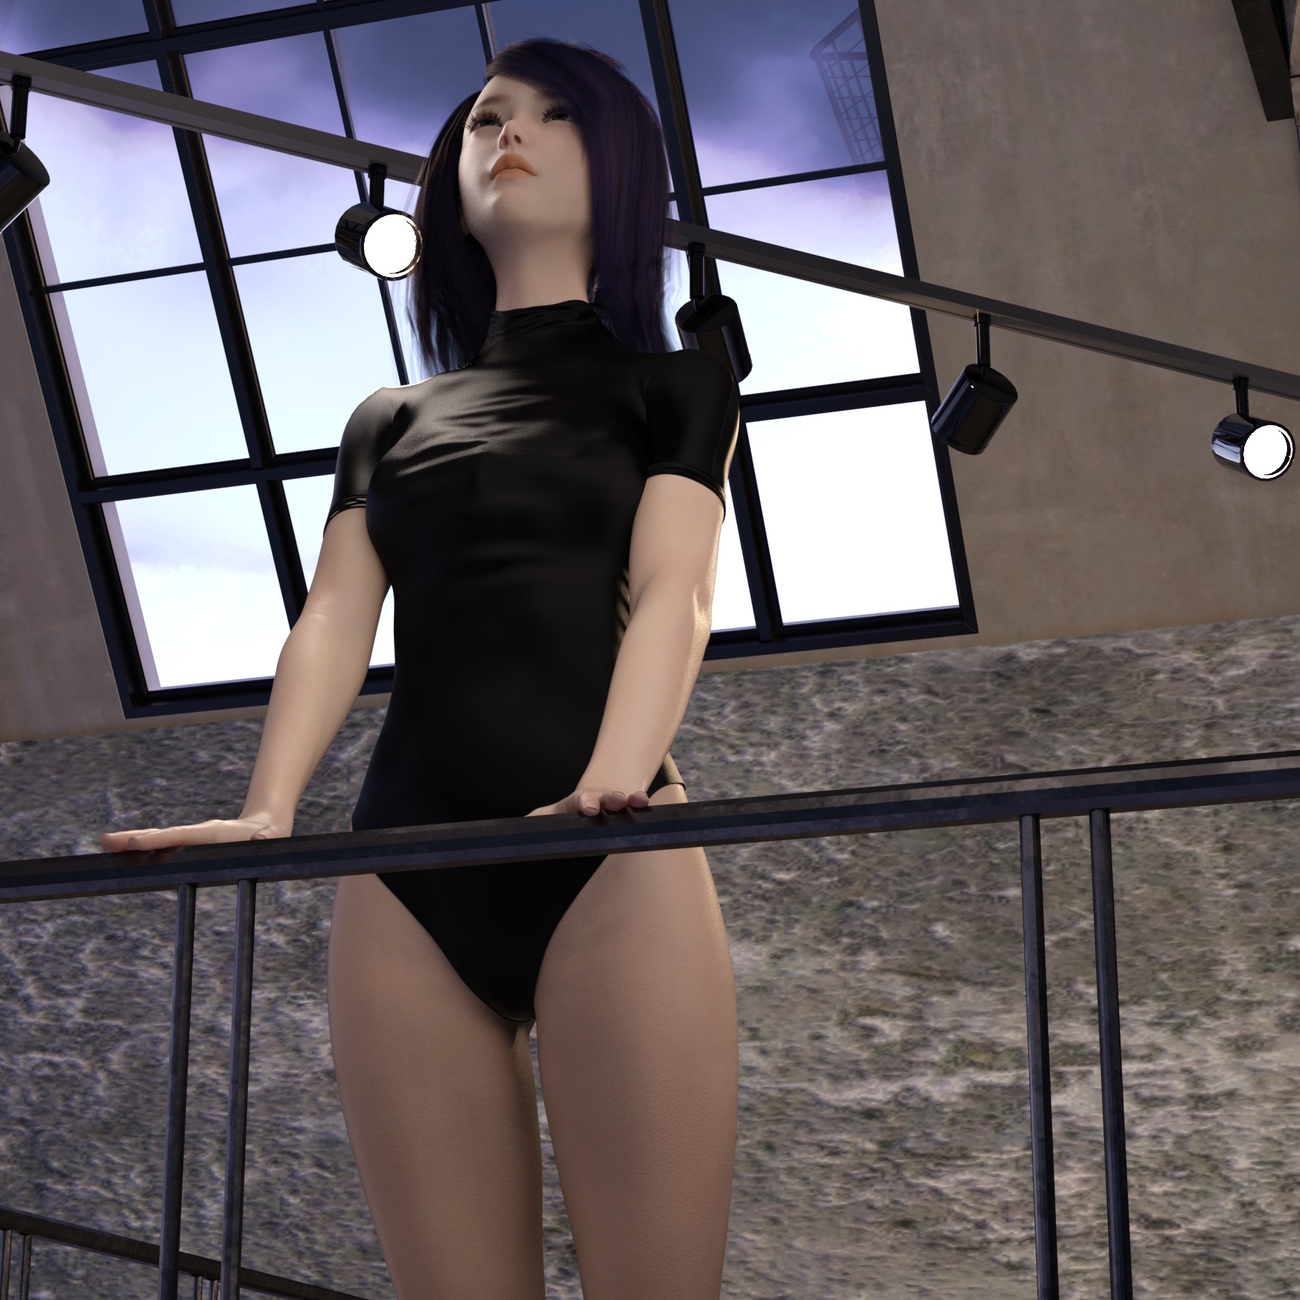 G8F in Japanese Swimsuit 02 Leotard style -3- by x7